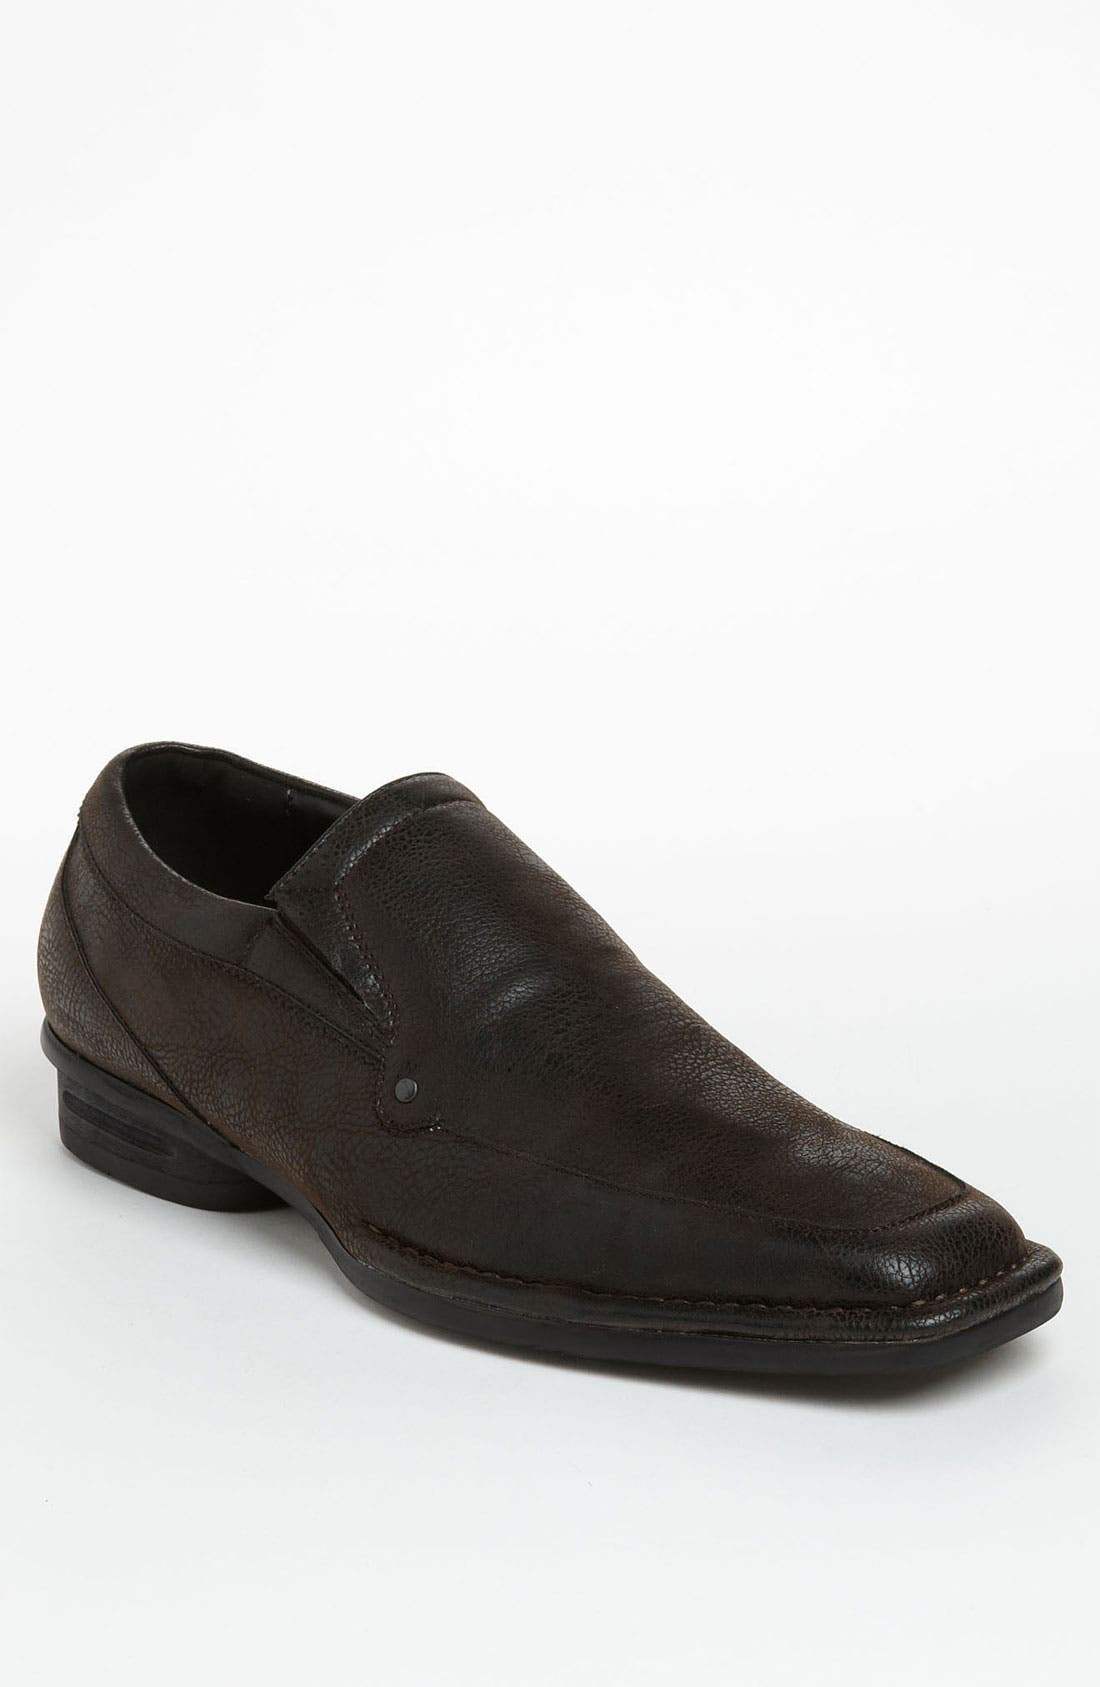 Main Image - Kenneth Cole Reaction 'Alternative Plan' Venetian Loafer (Online Only)